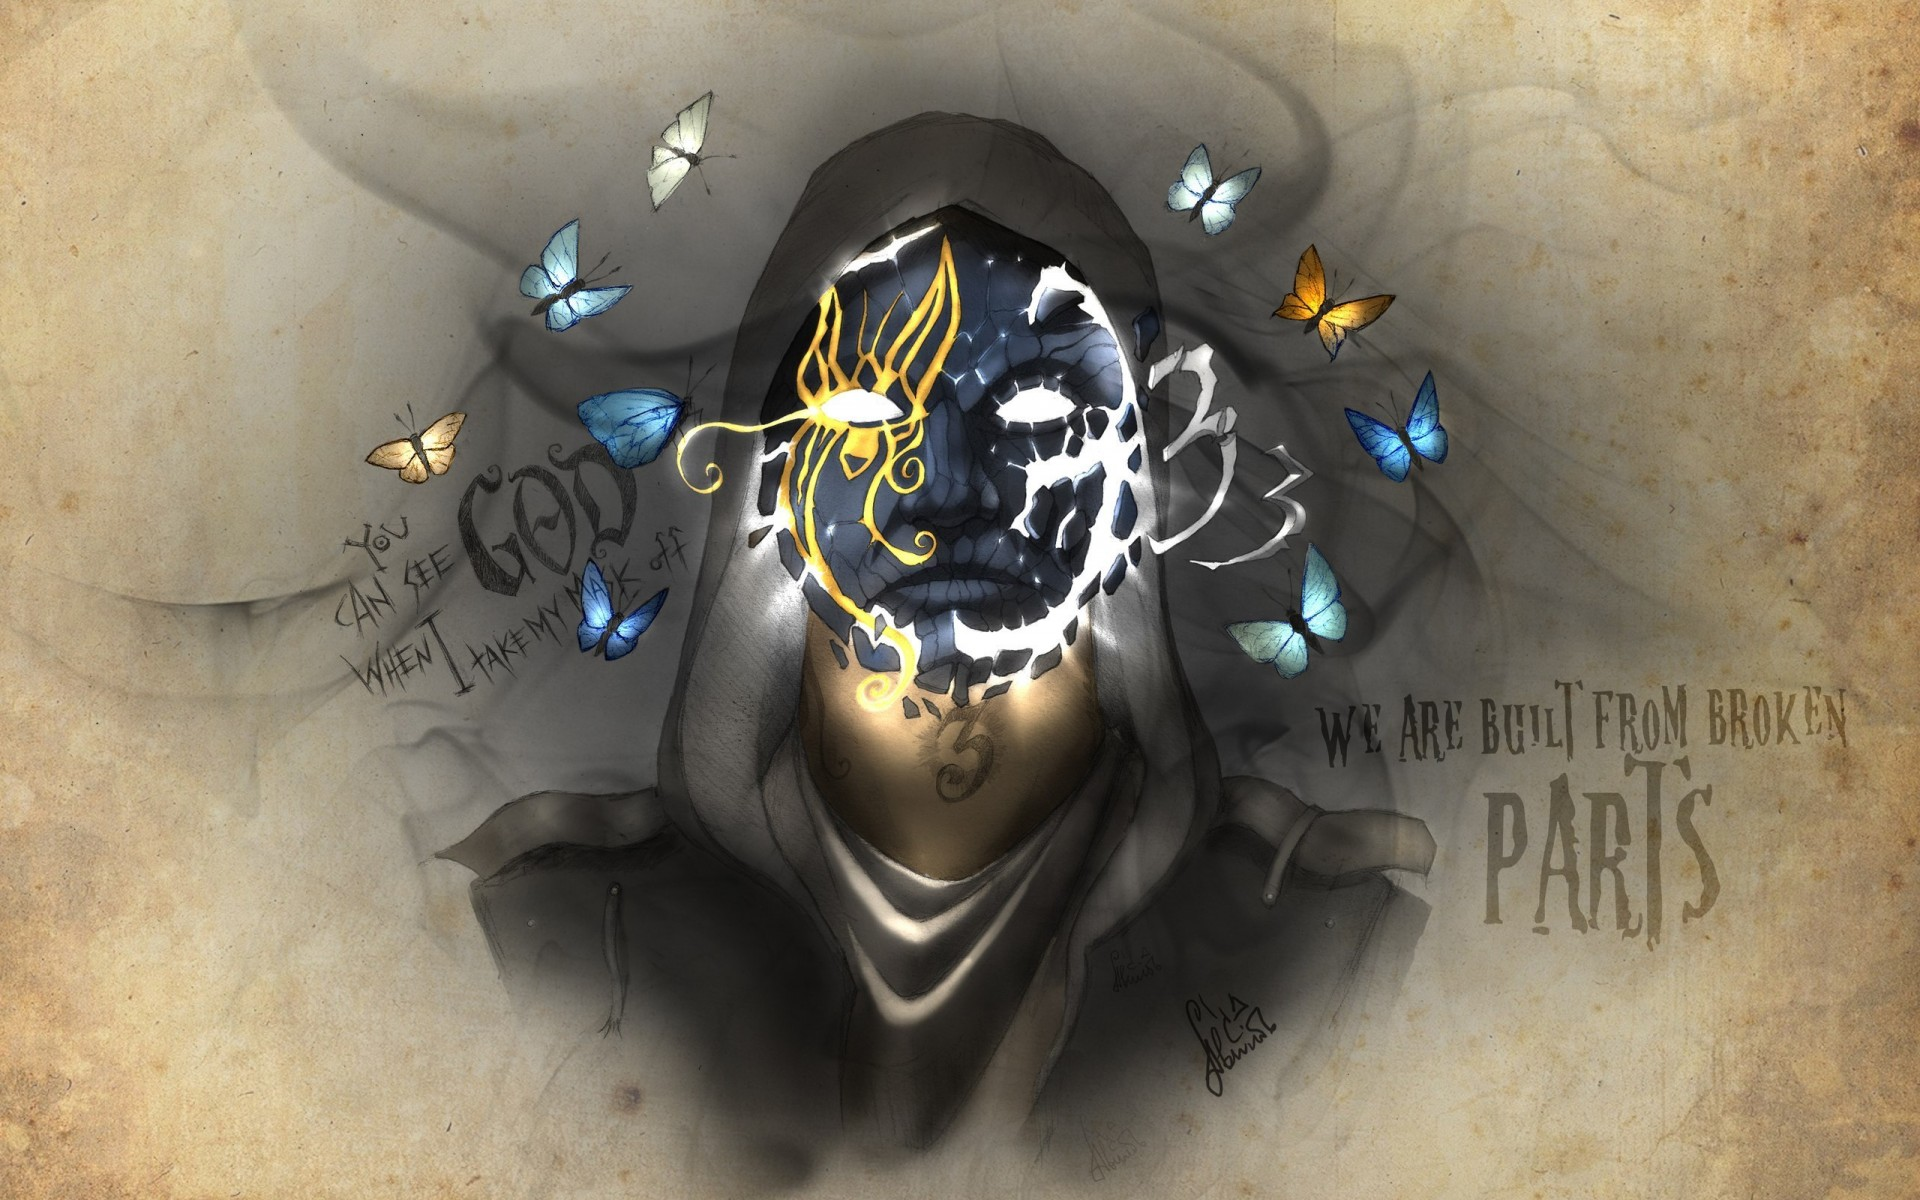 Hollywood Undead Notes from the Underground Johnny 3 Tears artwork    Hollywood Undead Wallpaper Notes From The Underground